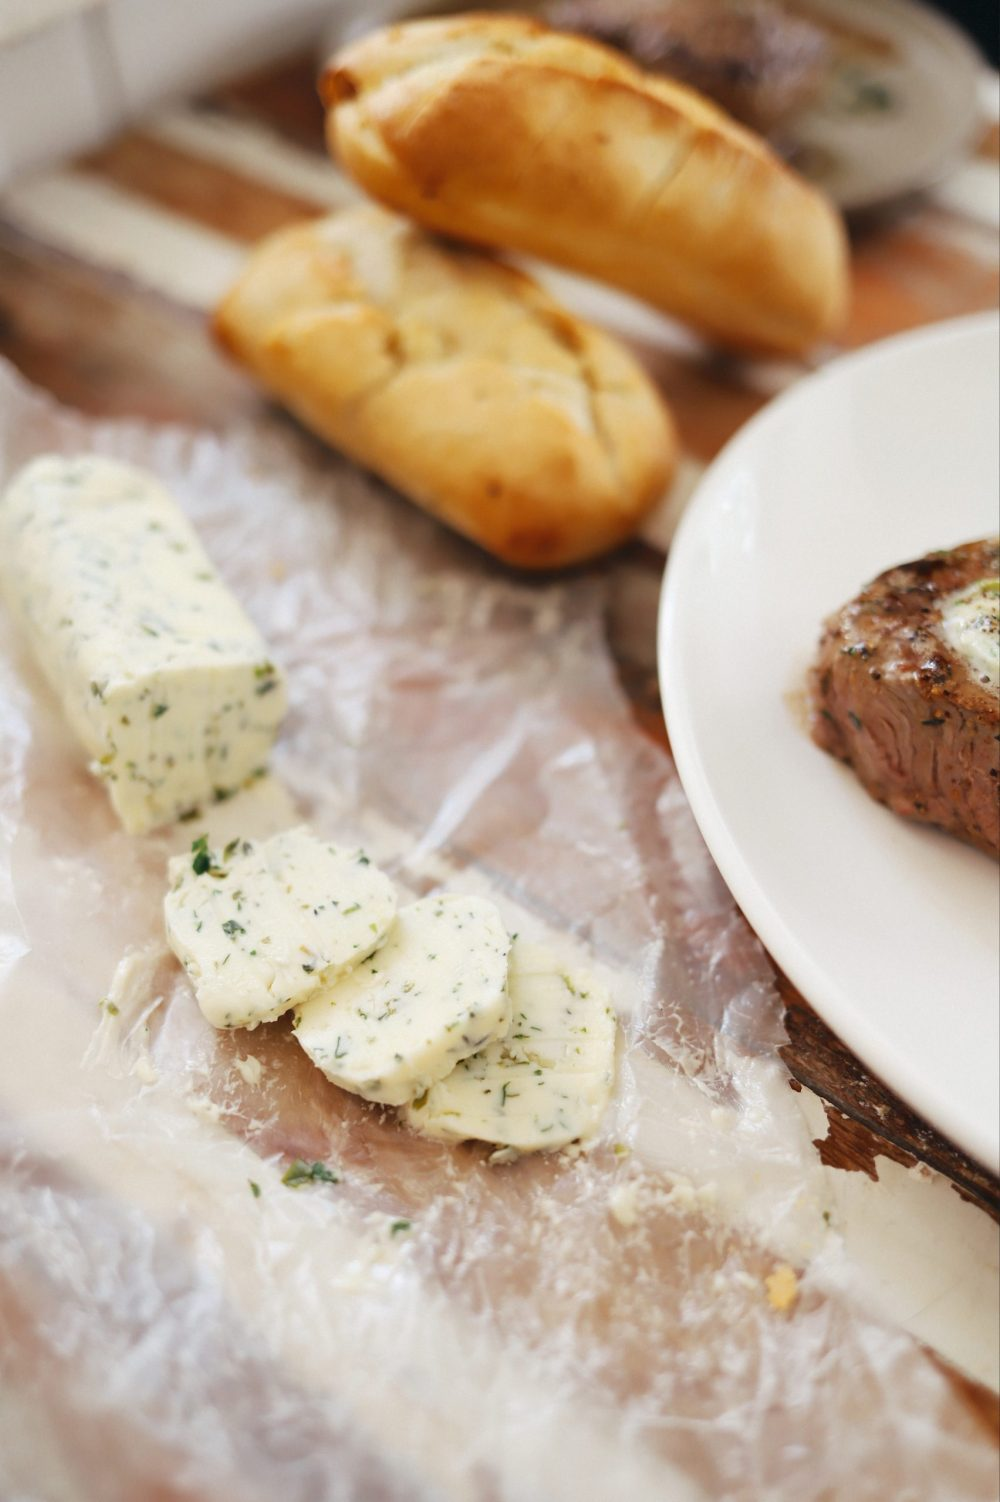 Homemade Steak Butter: How to Make an Easy Steakhouse Herb Butter for Steak  Steak Butter by popular Florida lifestyle blog, Fresh Mommy Blog: image of herb butter on some wax paper.